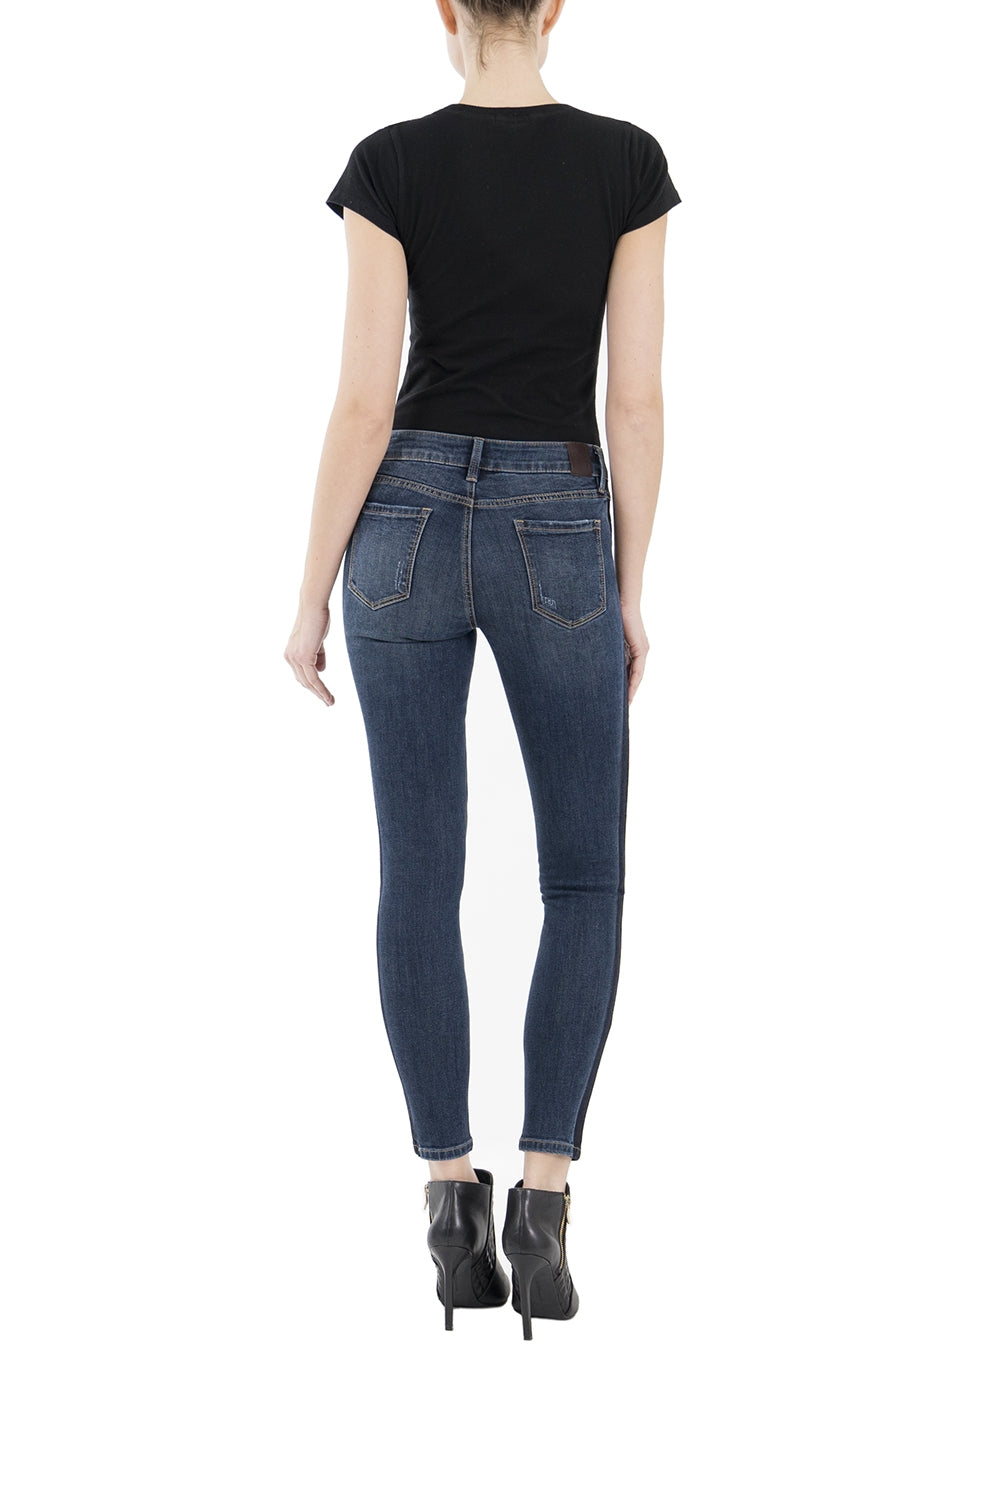 Under Study Janice Mid Rise Skinny